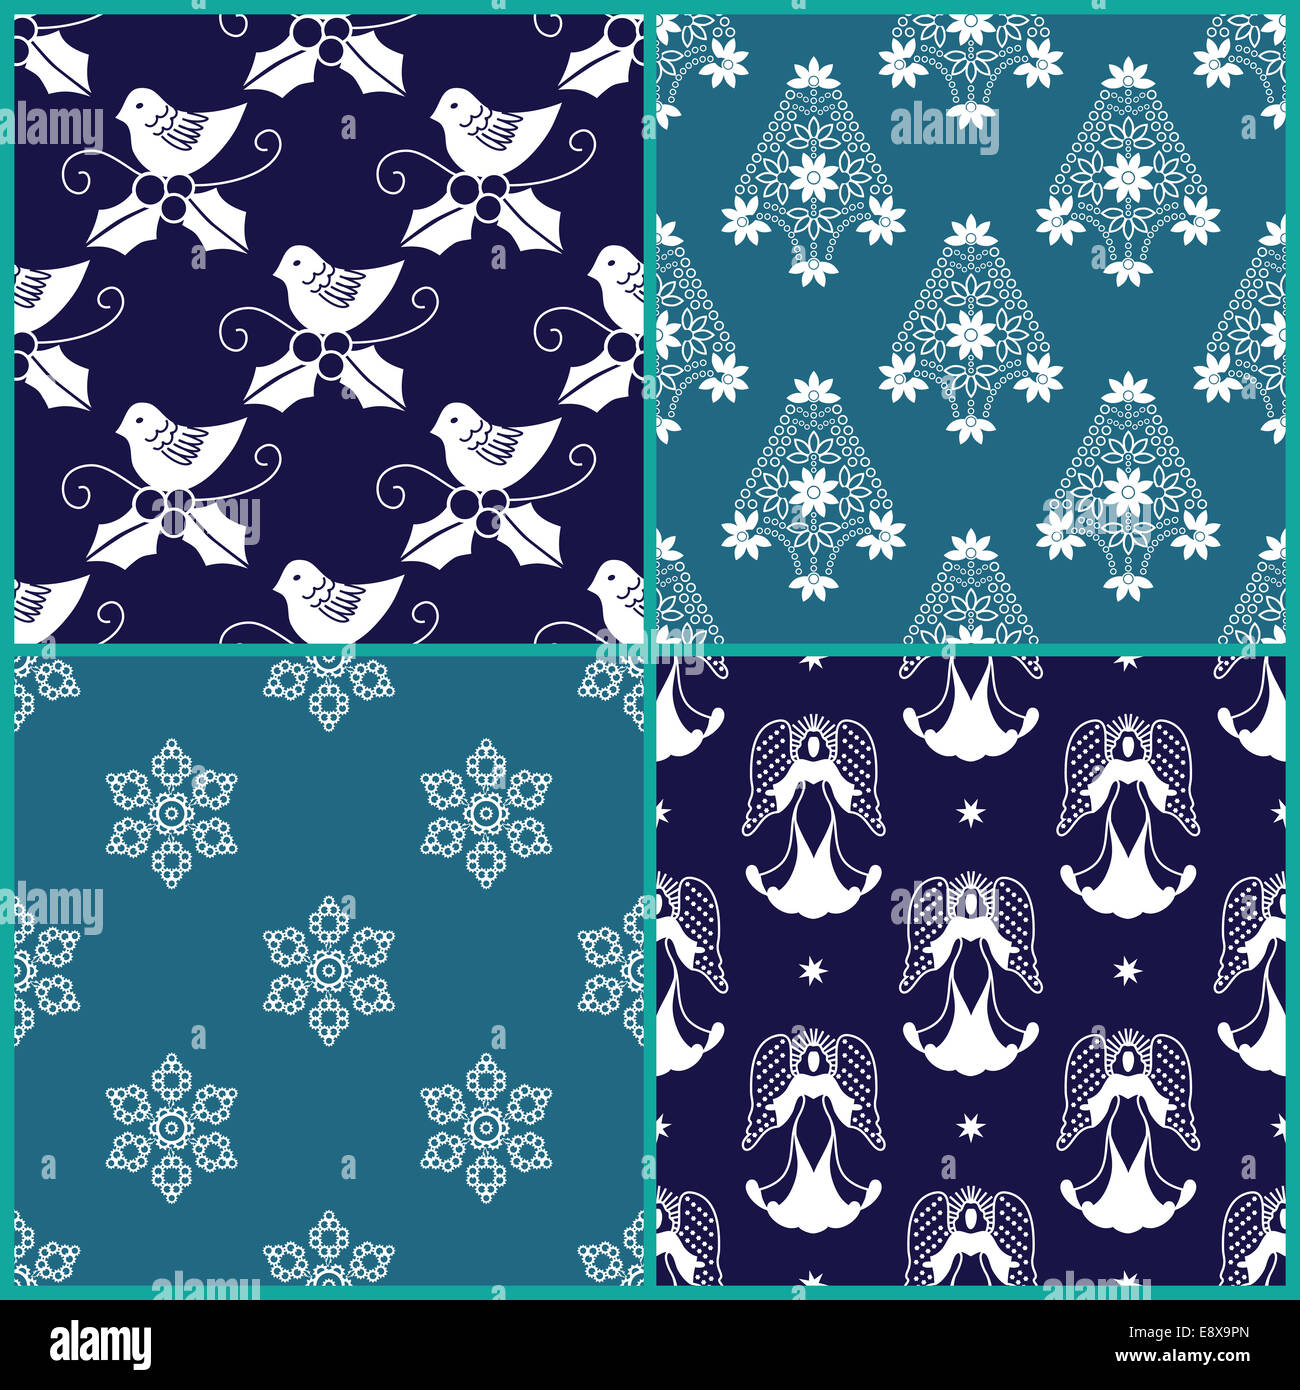 4 christmas gift wrapping paper designs stock photo 74337165 alamy